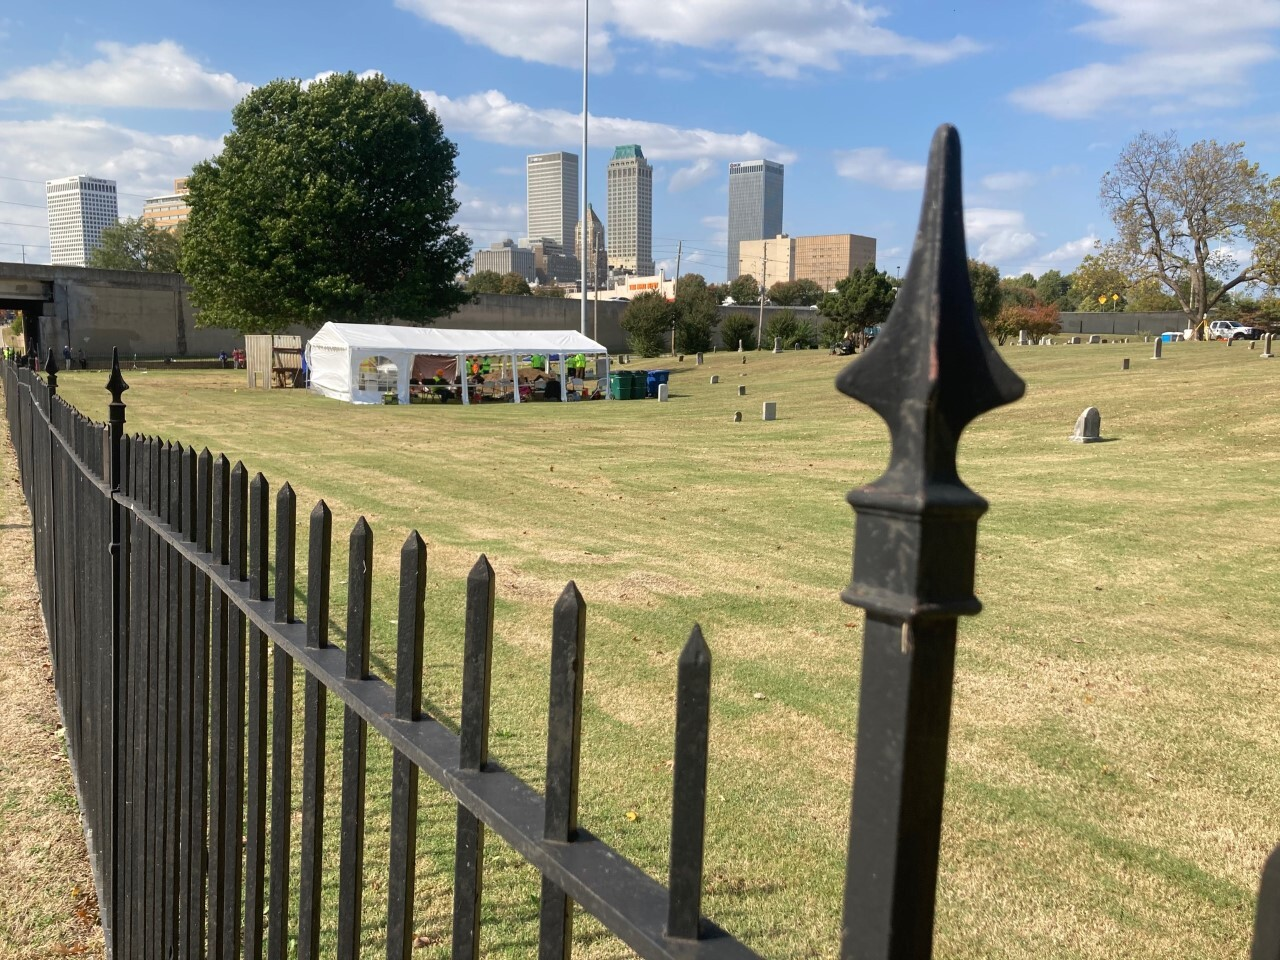 Day three of the second test excavation in the 1921 Tulsa Race Massacre Graves Investigation